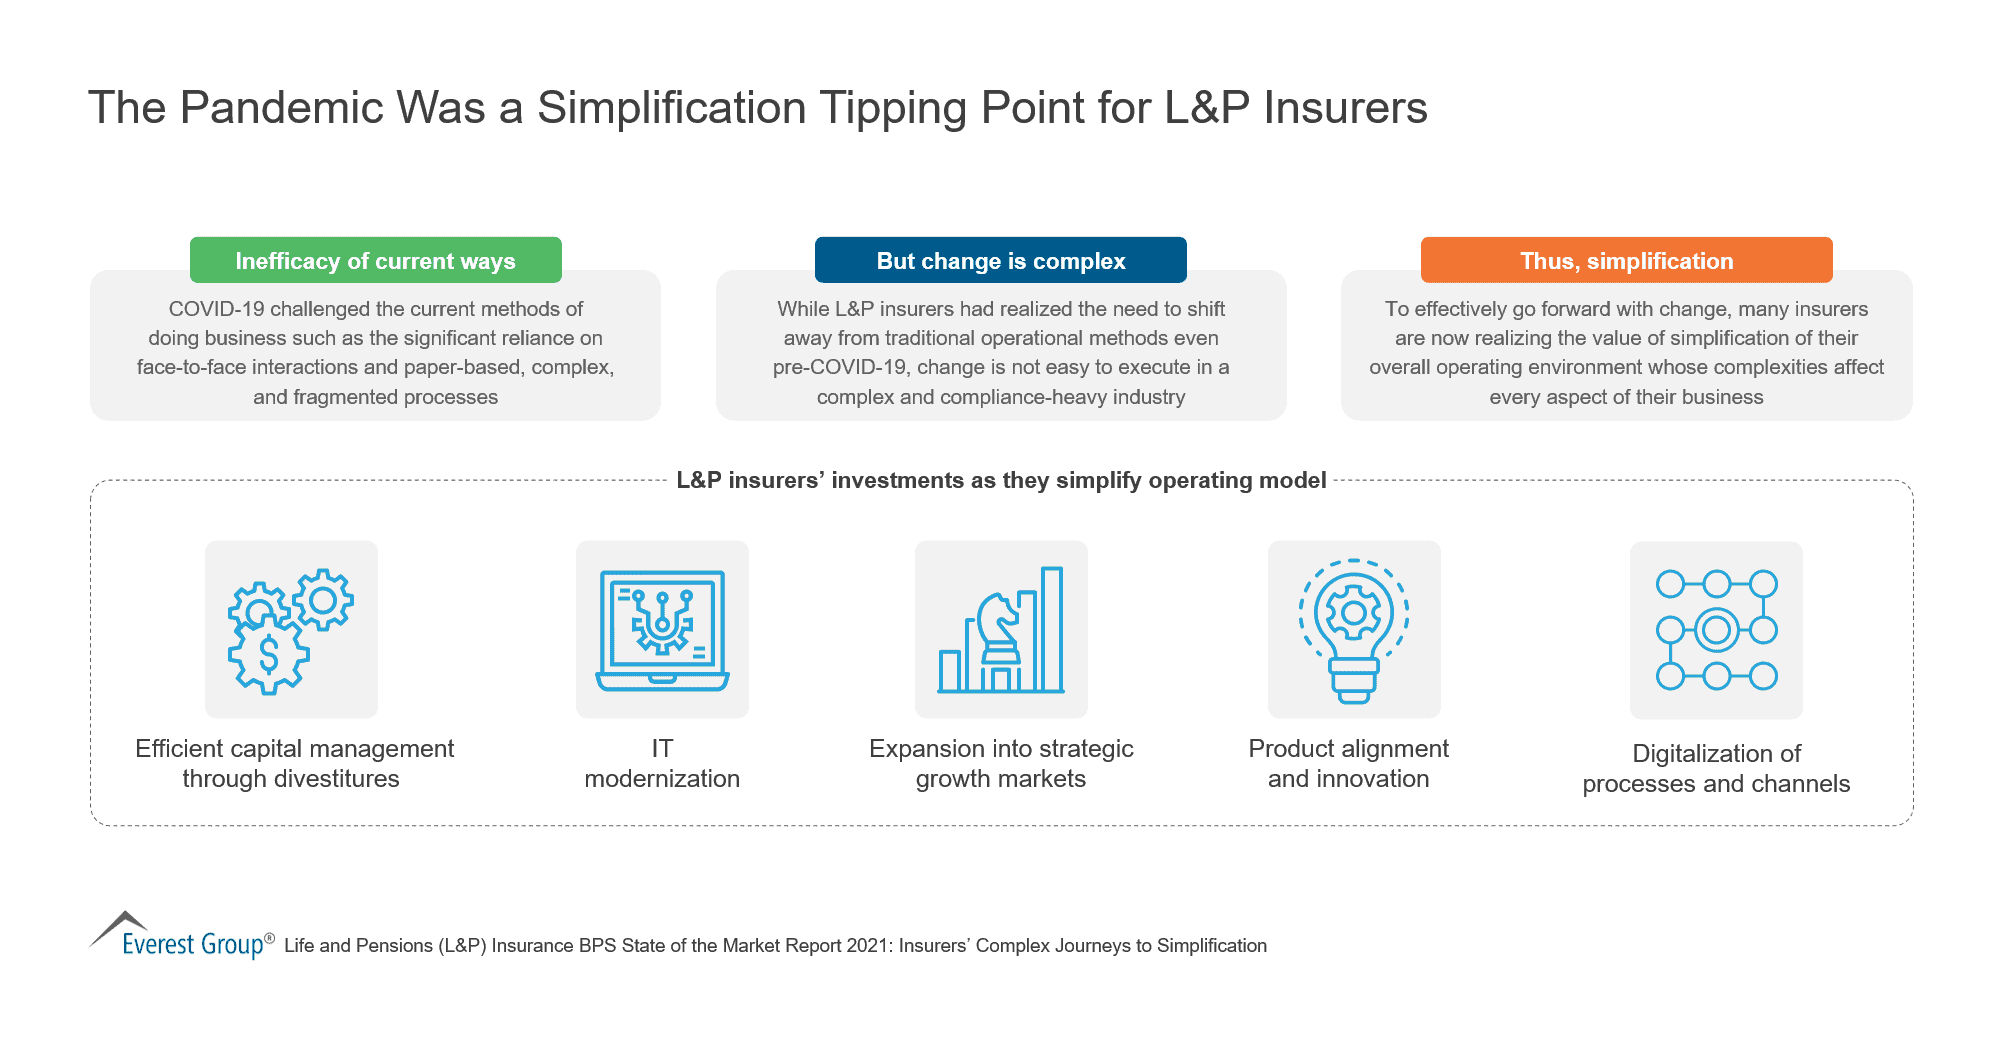 The Pandemic Was a Simplification Tipping Point for L P Insurers